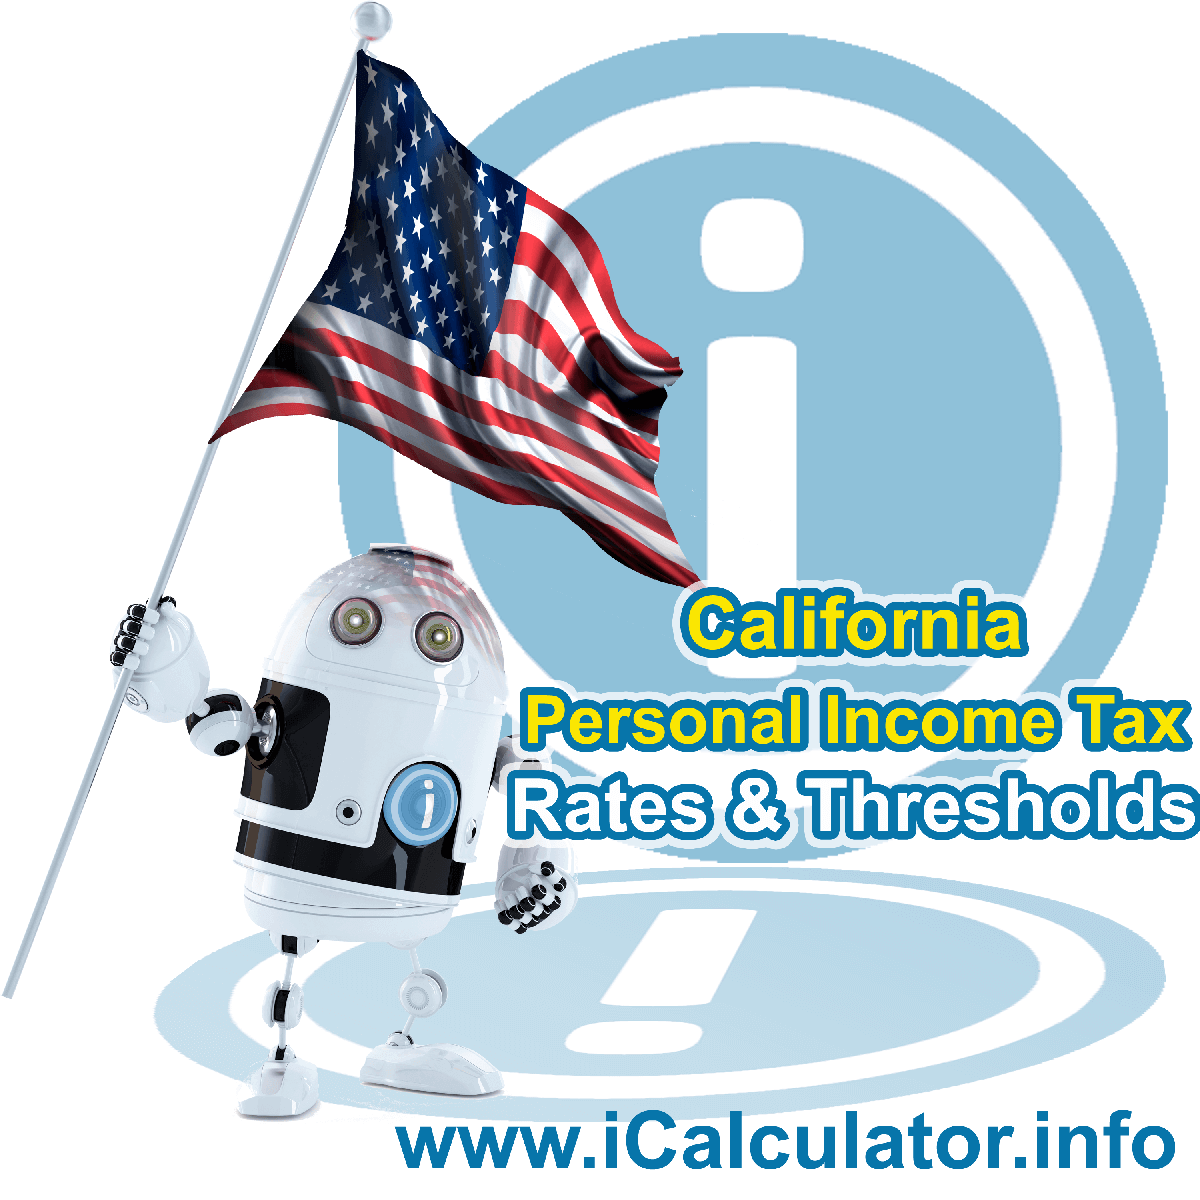 California State Tax Tables 2021. This image displays details of the California State Tax Tables for the 2021 tax return year which is provided in support of the 2021 US Tax Calculator